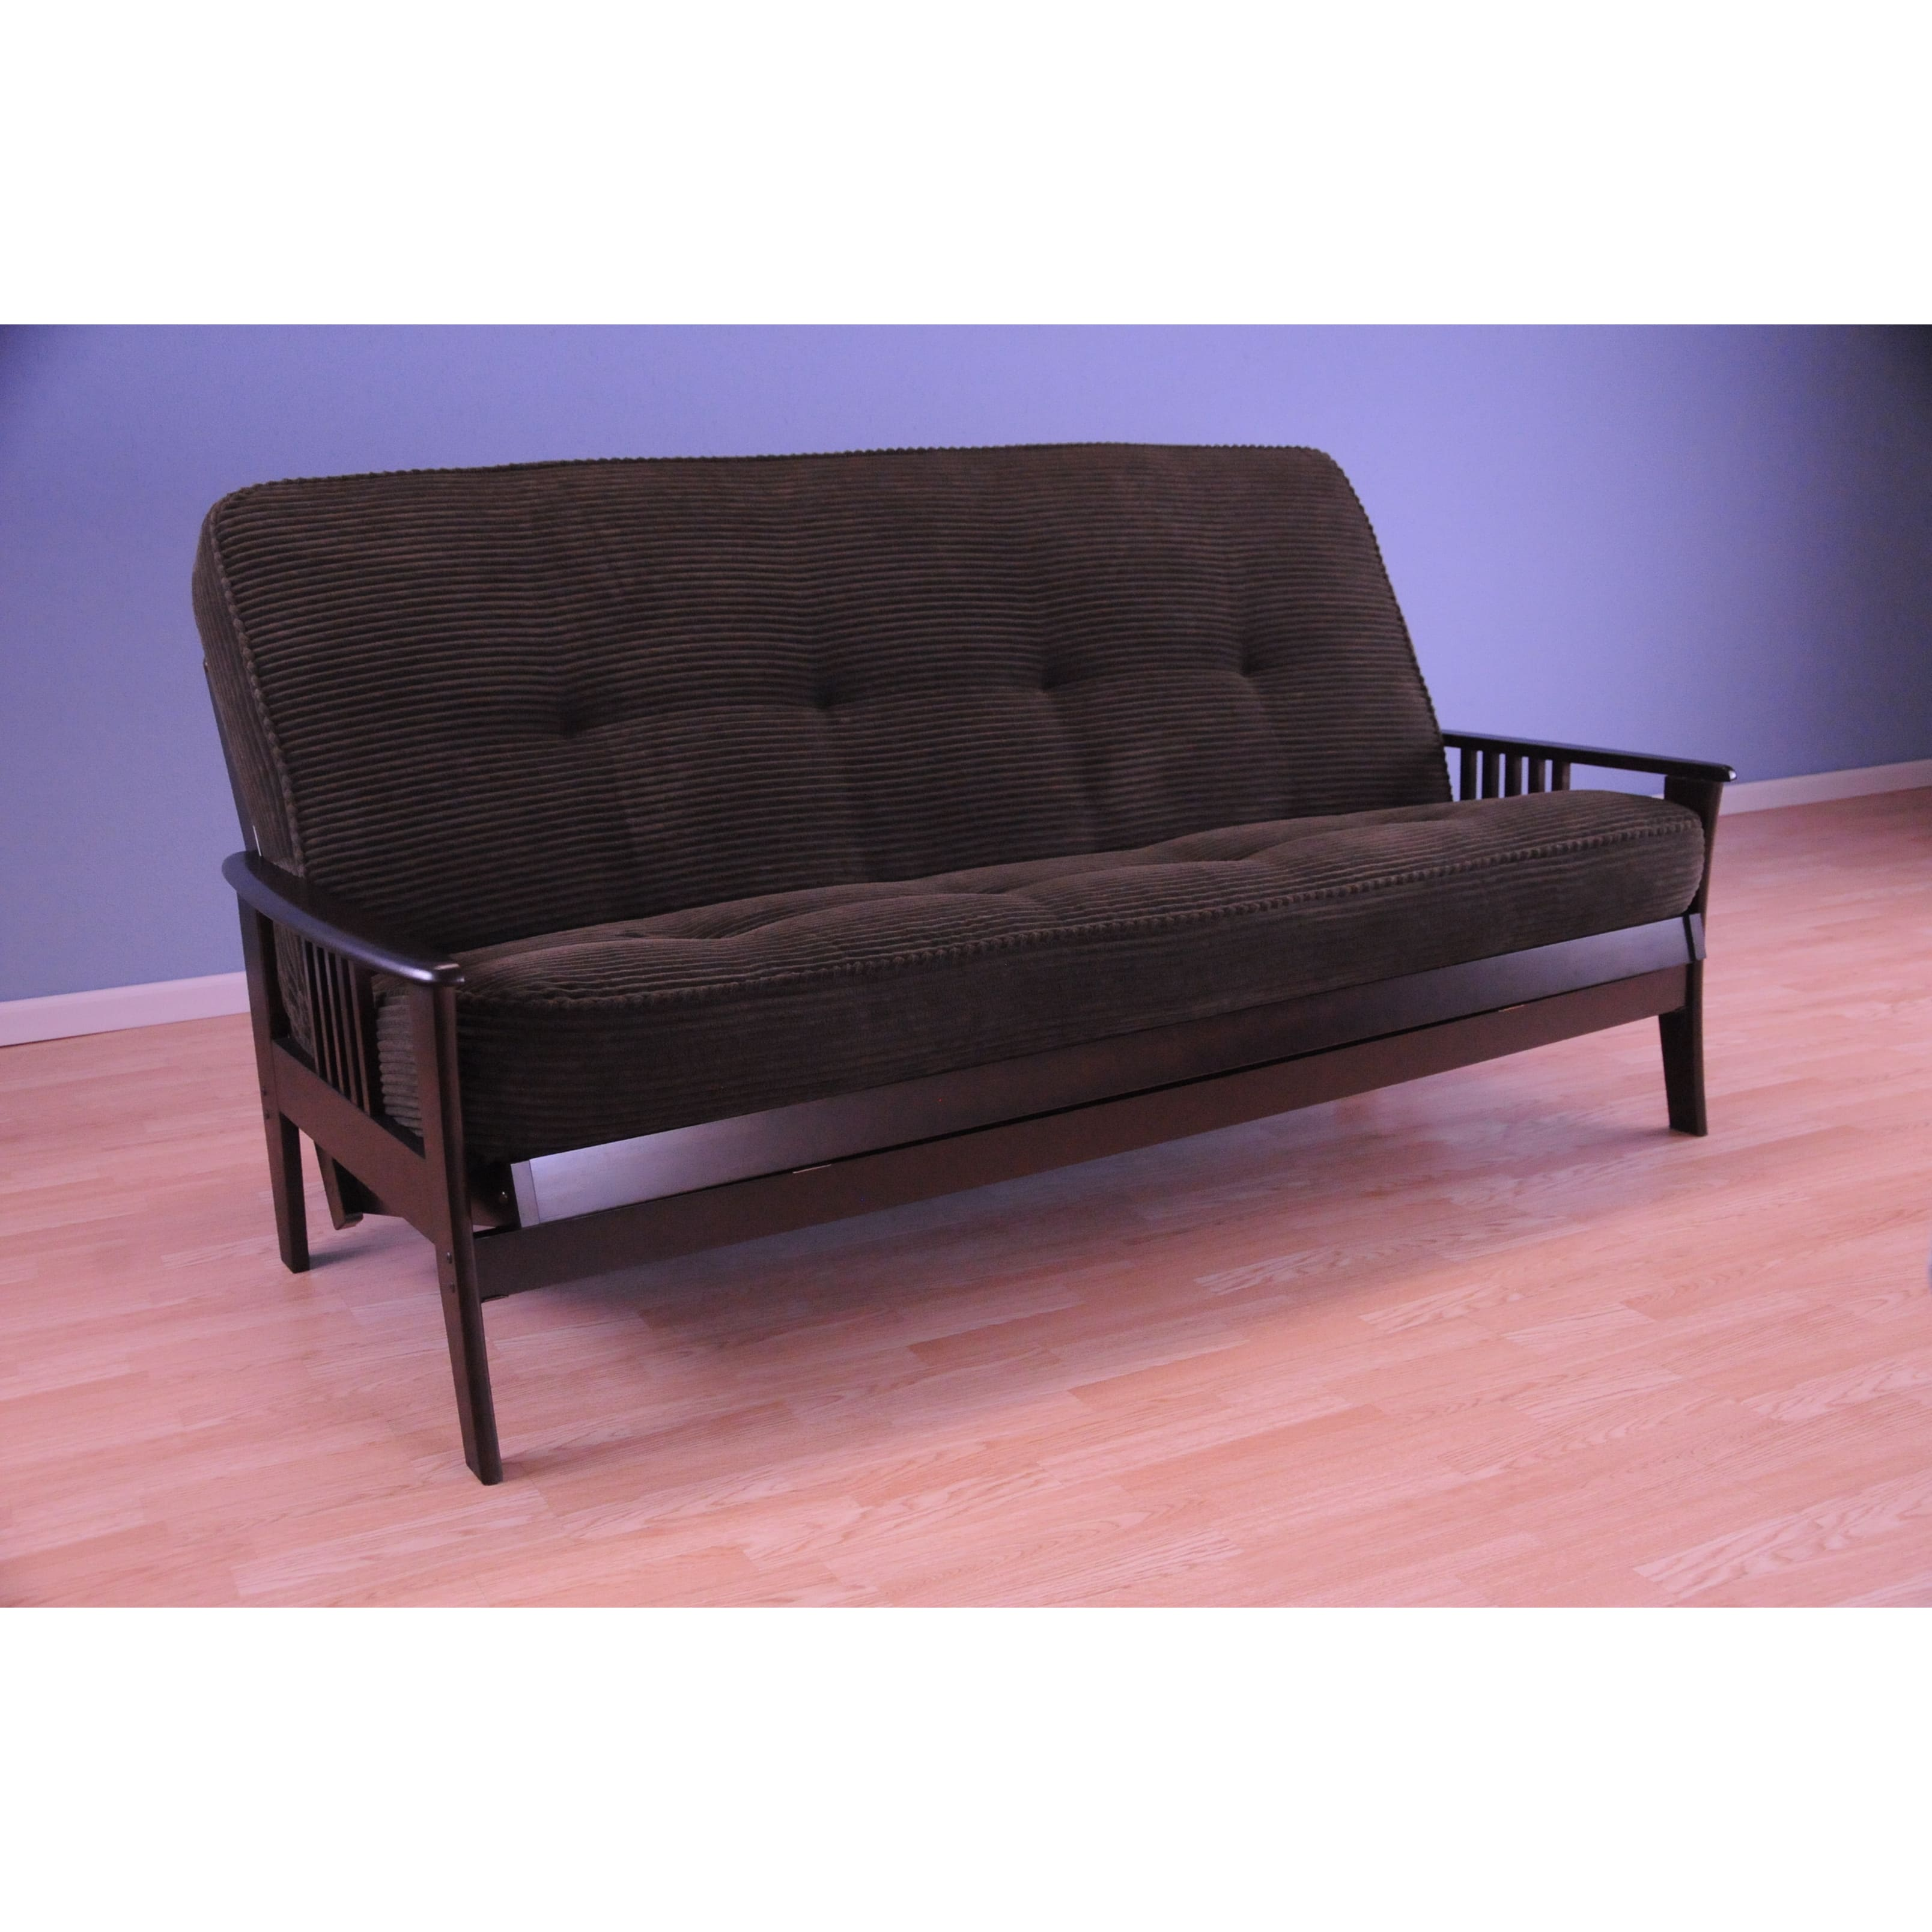 Christopher Knight Home  Capri Espresso/ Tantra Futon Mattress and Frame